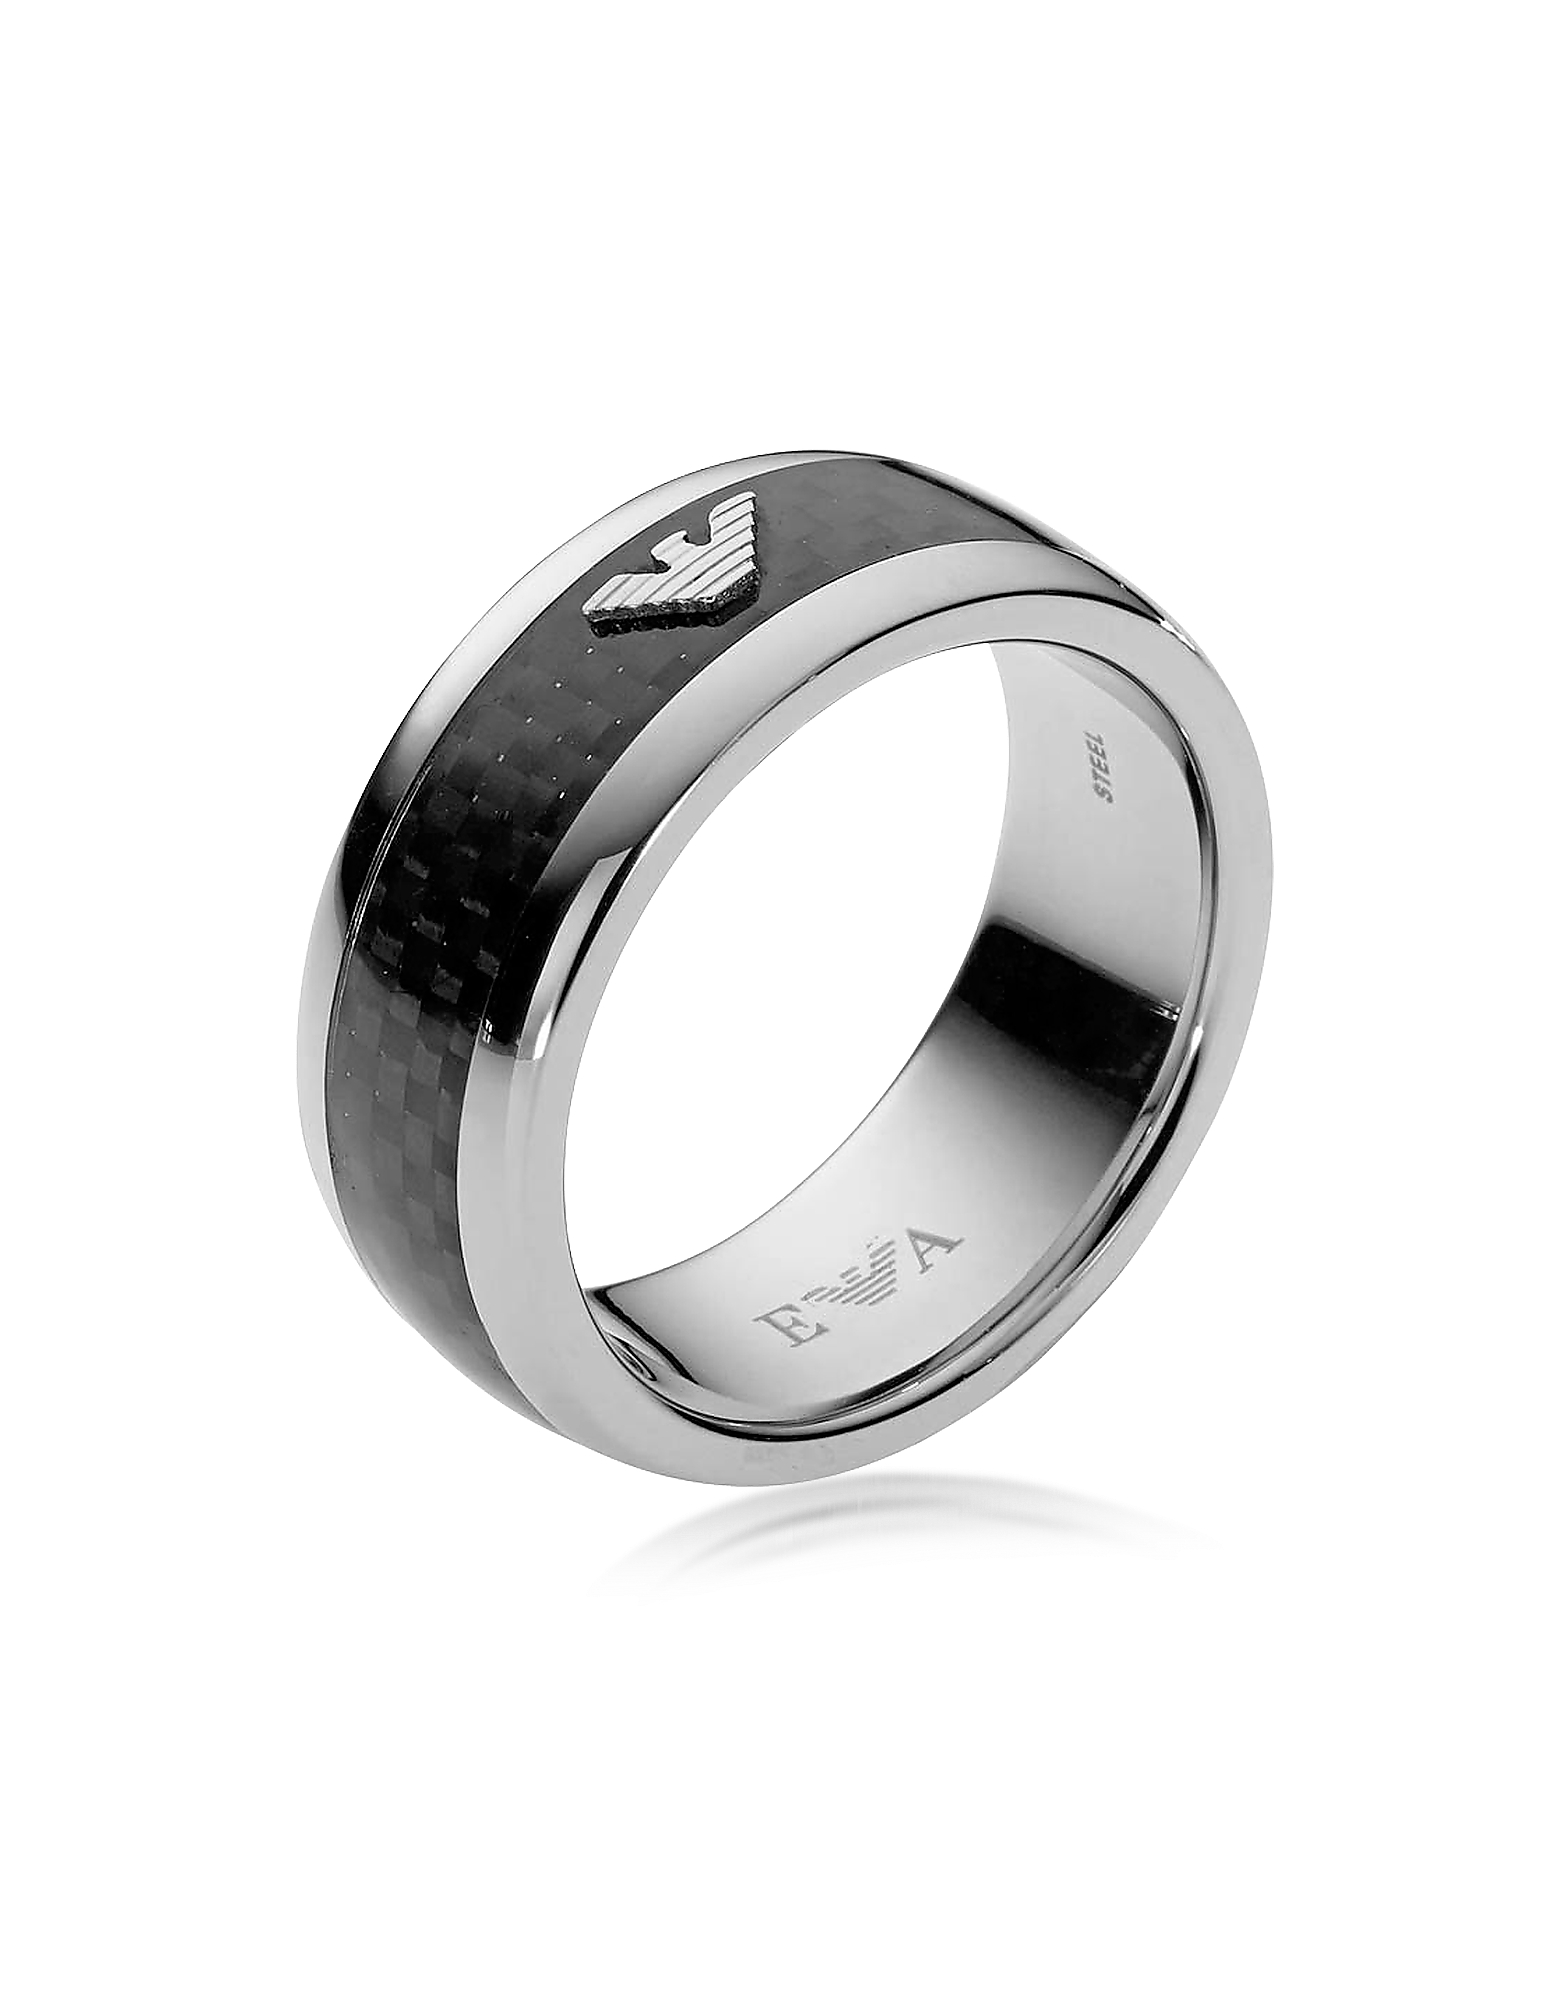 Iconic Carbon Fiber and Stainless Steel Men's Ring, Black